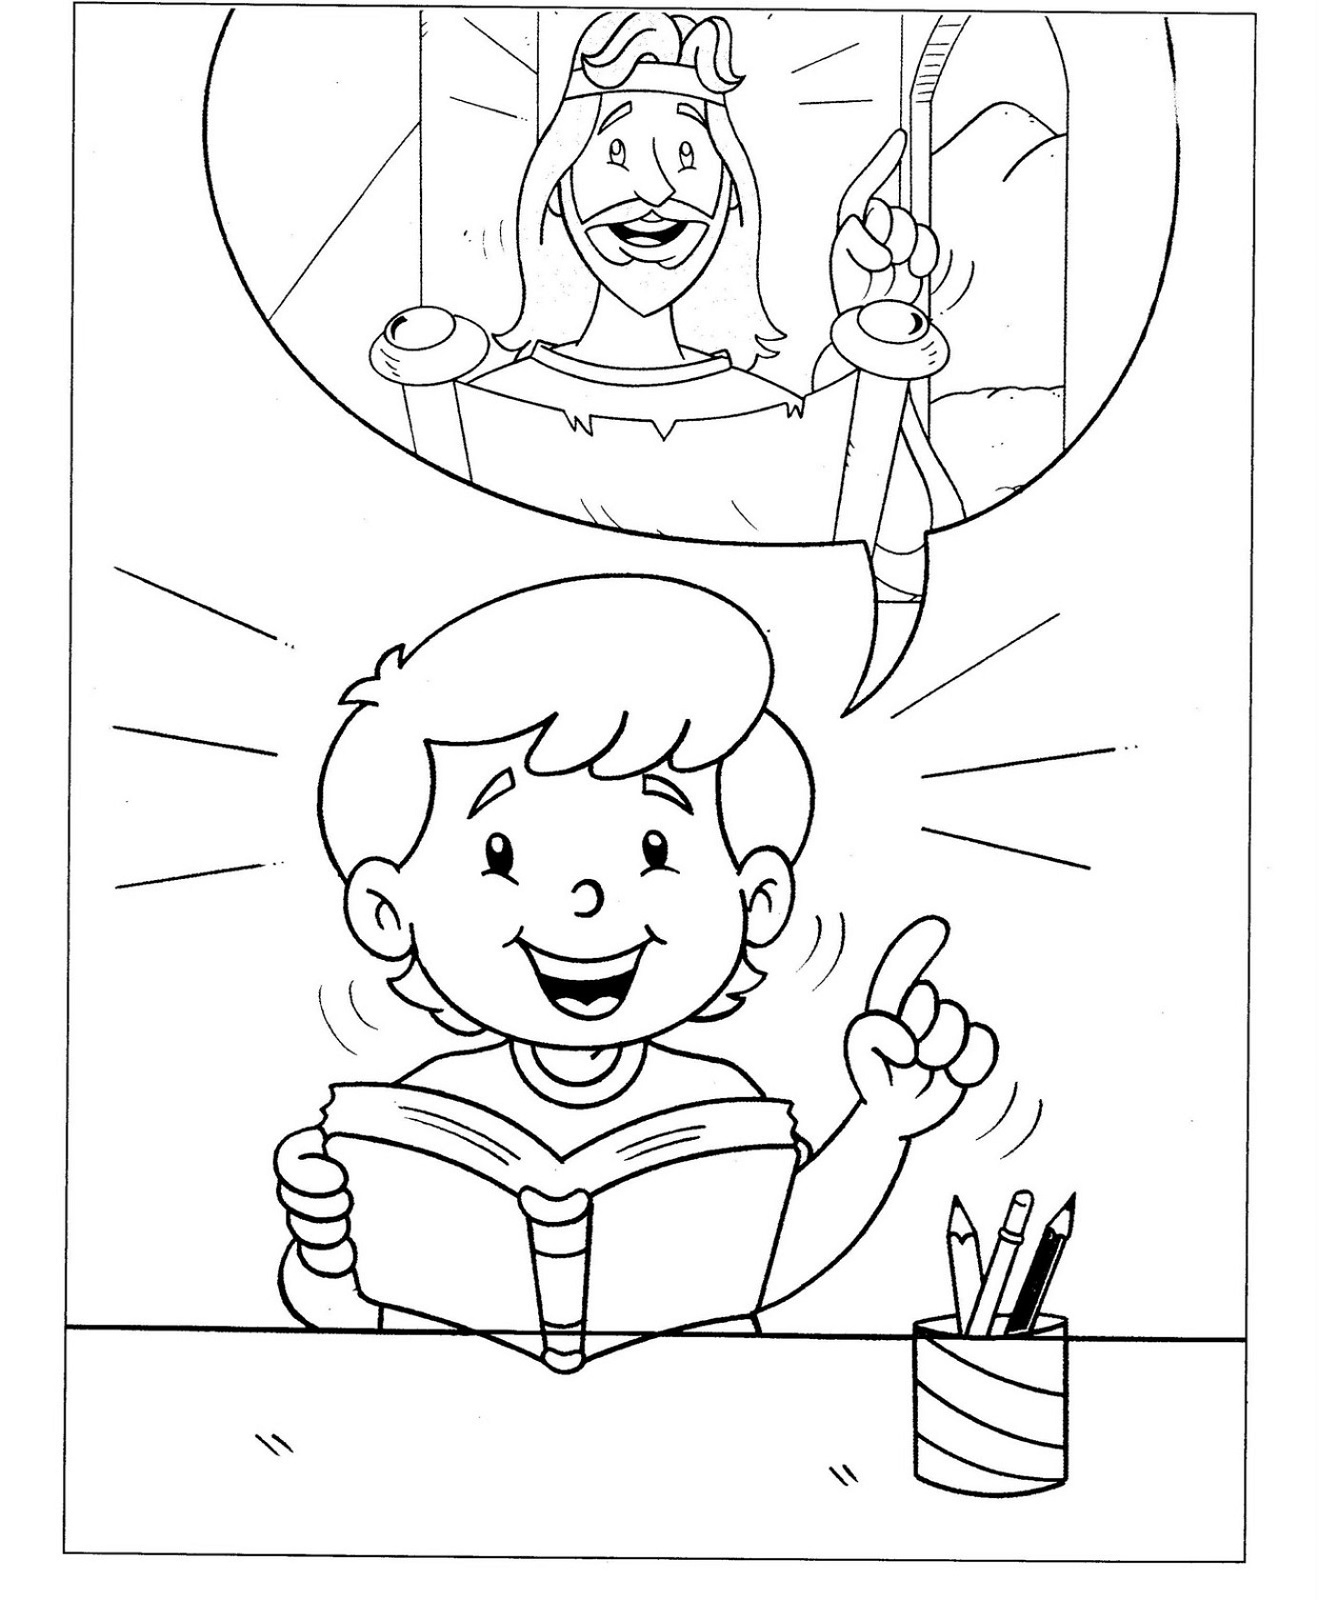 printable christian coloring pages free printable christian coloring pages for kids best christian pages printable coloring